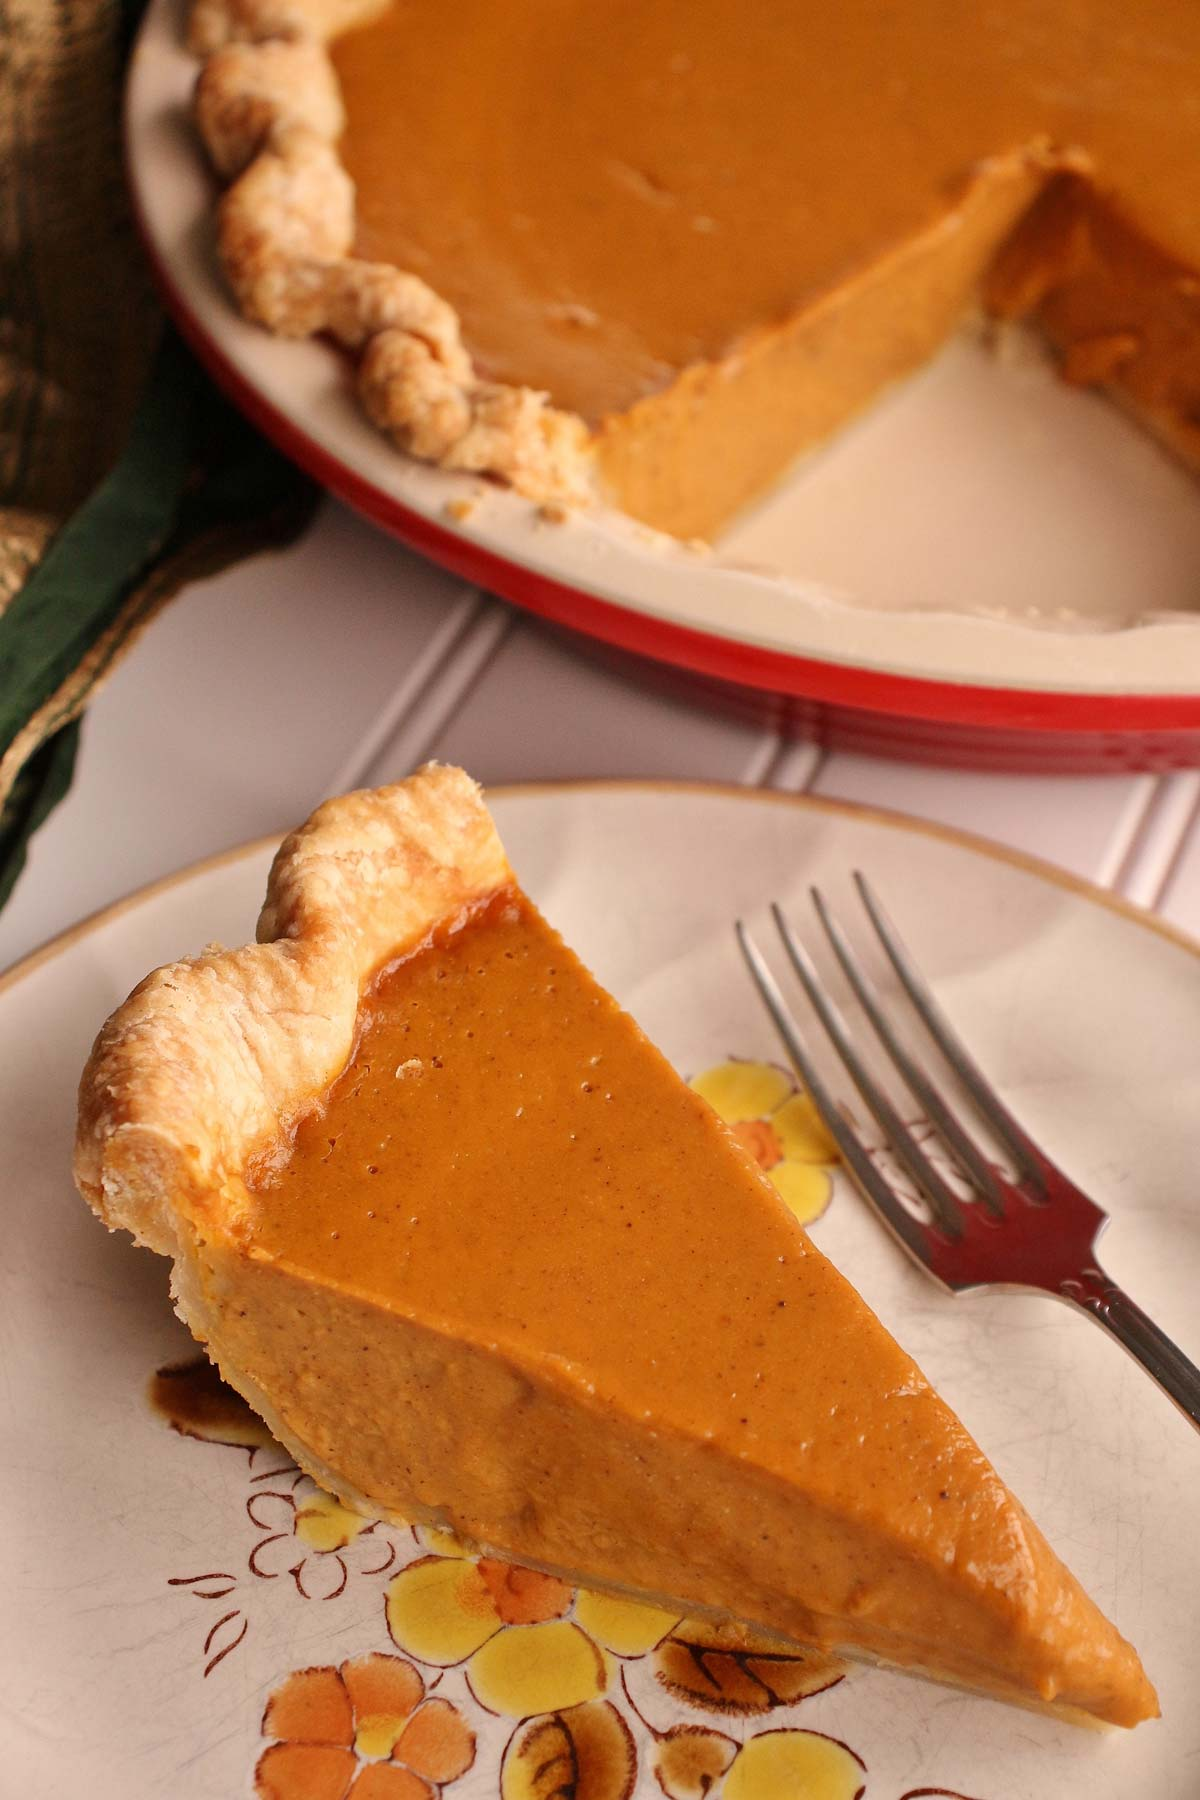 A slice of pumpkin pie on a plate with a red ceramic pie dish in the background.